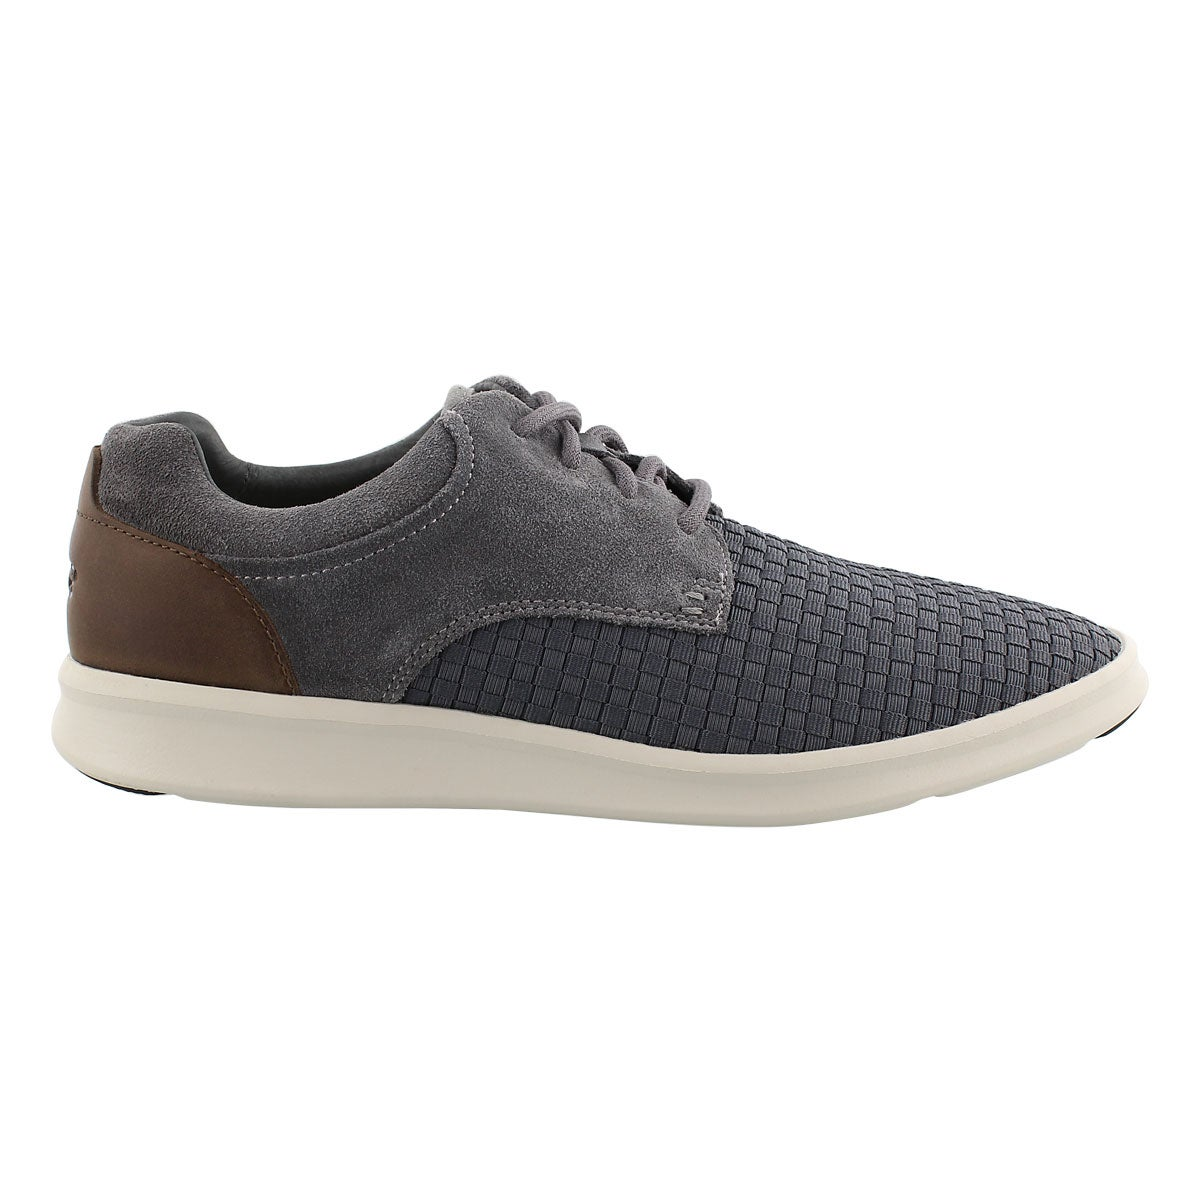 Mns Hepner Woven metal Lace Up Shoe